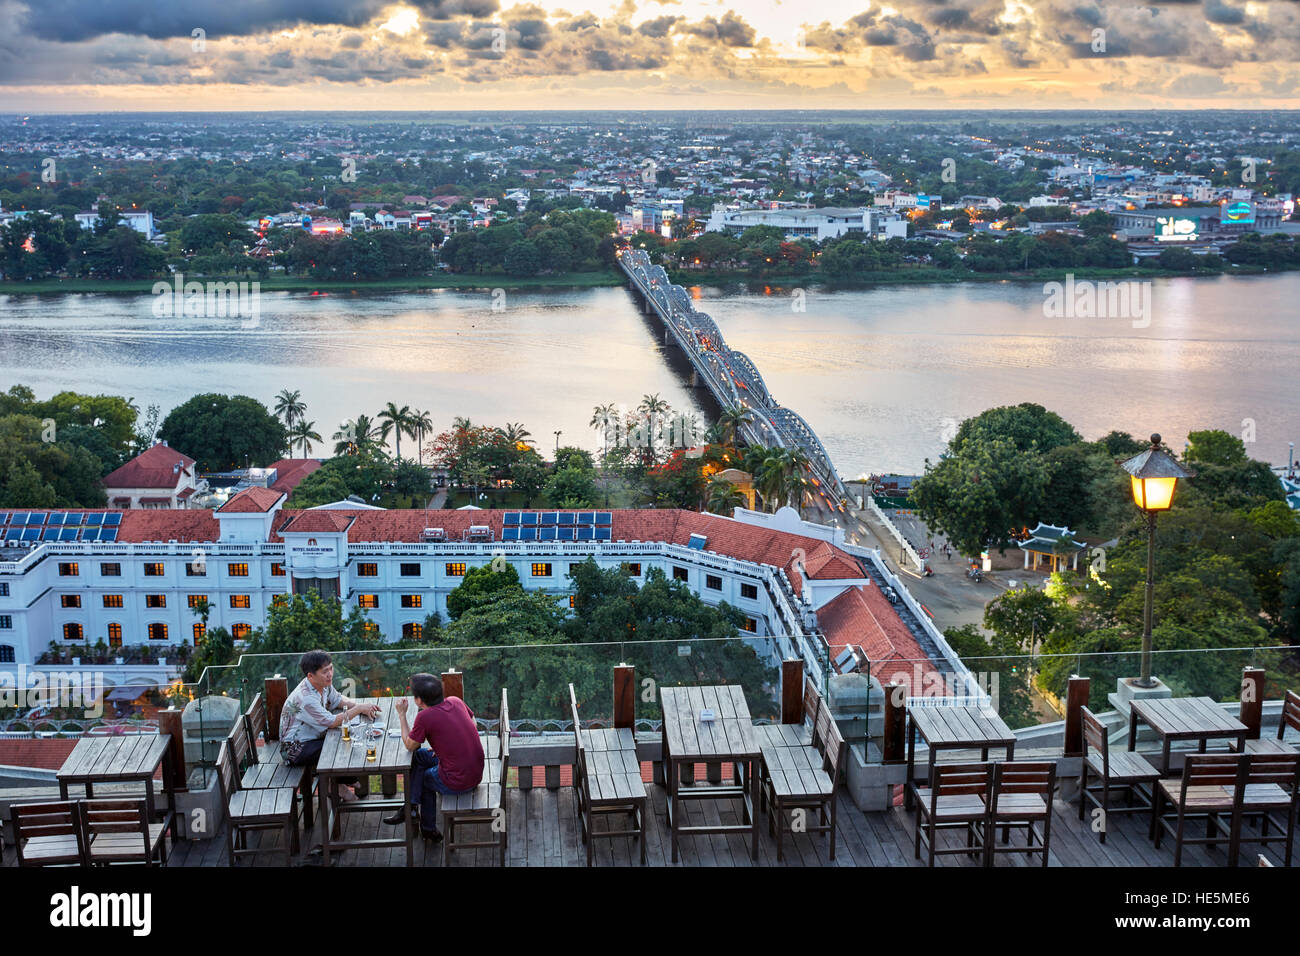 Aerial city view over the Perfume River and Truong Tien Bridge from The Imperial Hotel rooftop bar. Hue, Vietnam. Stock Photo